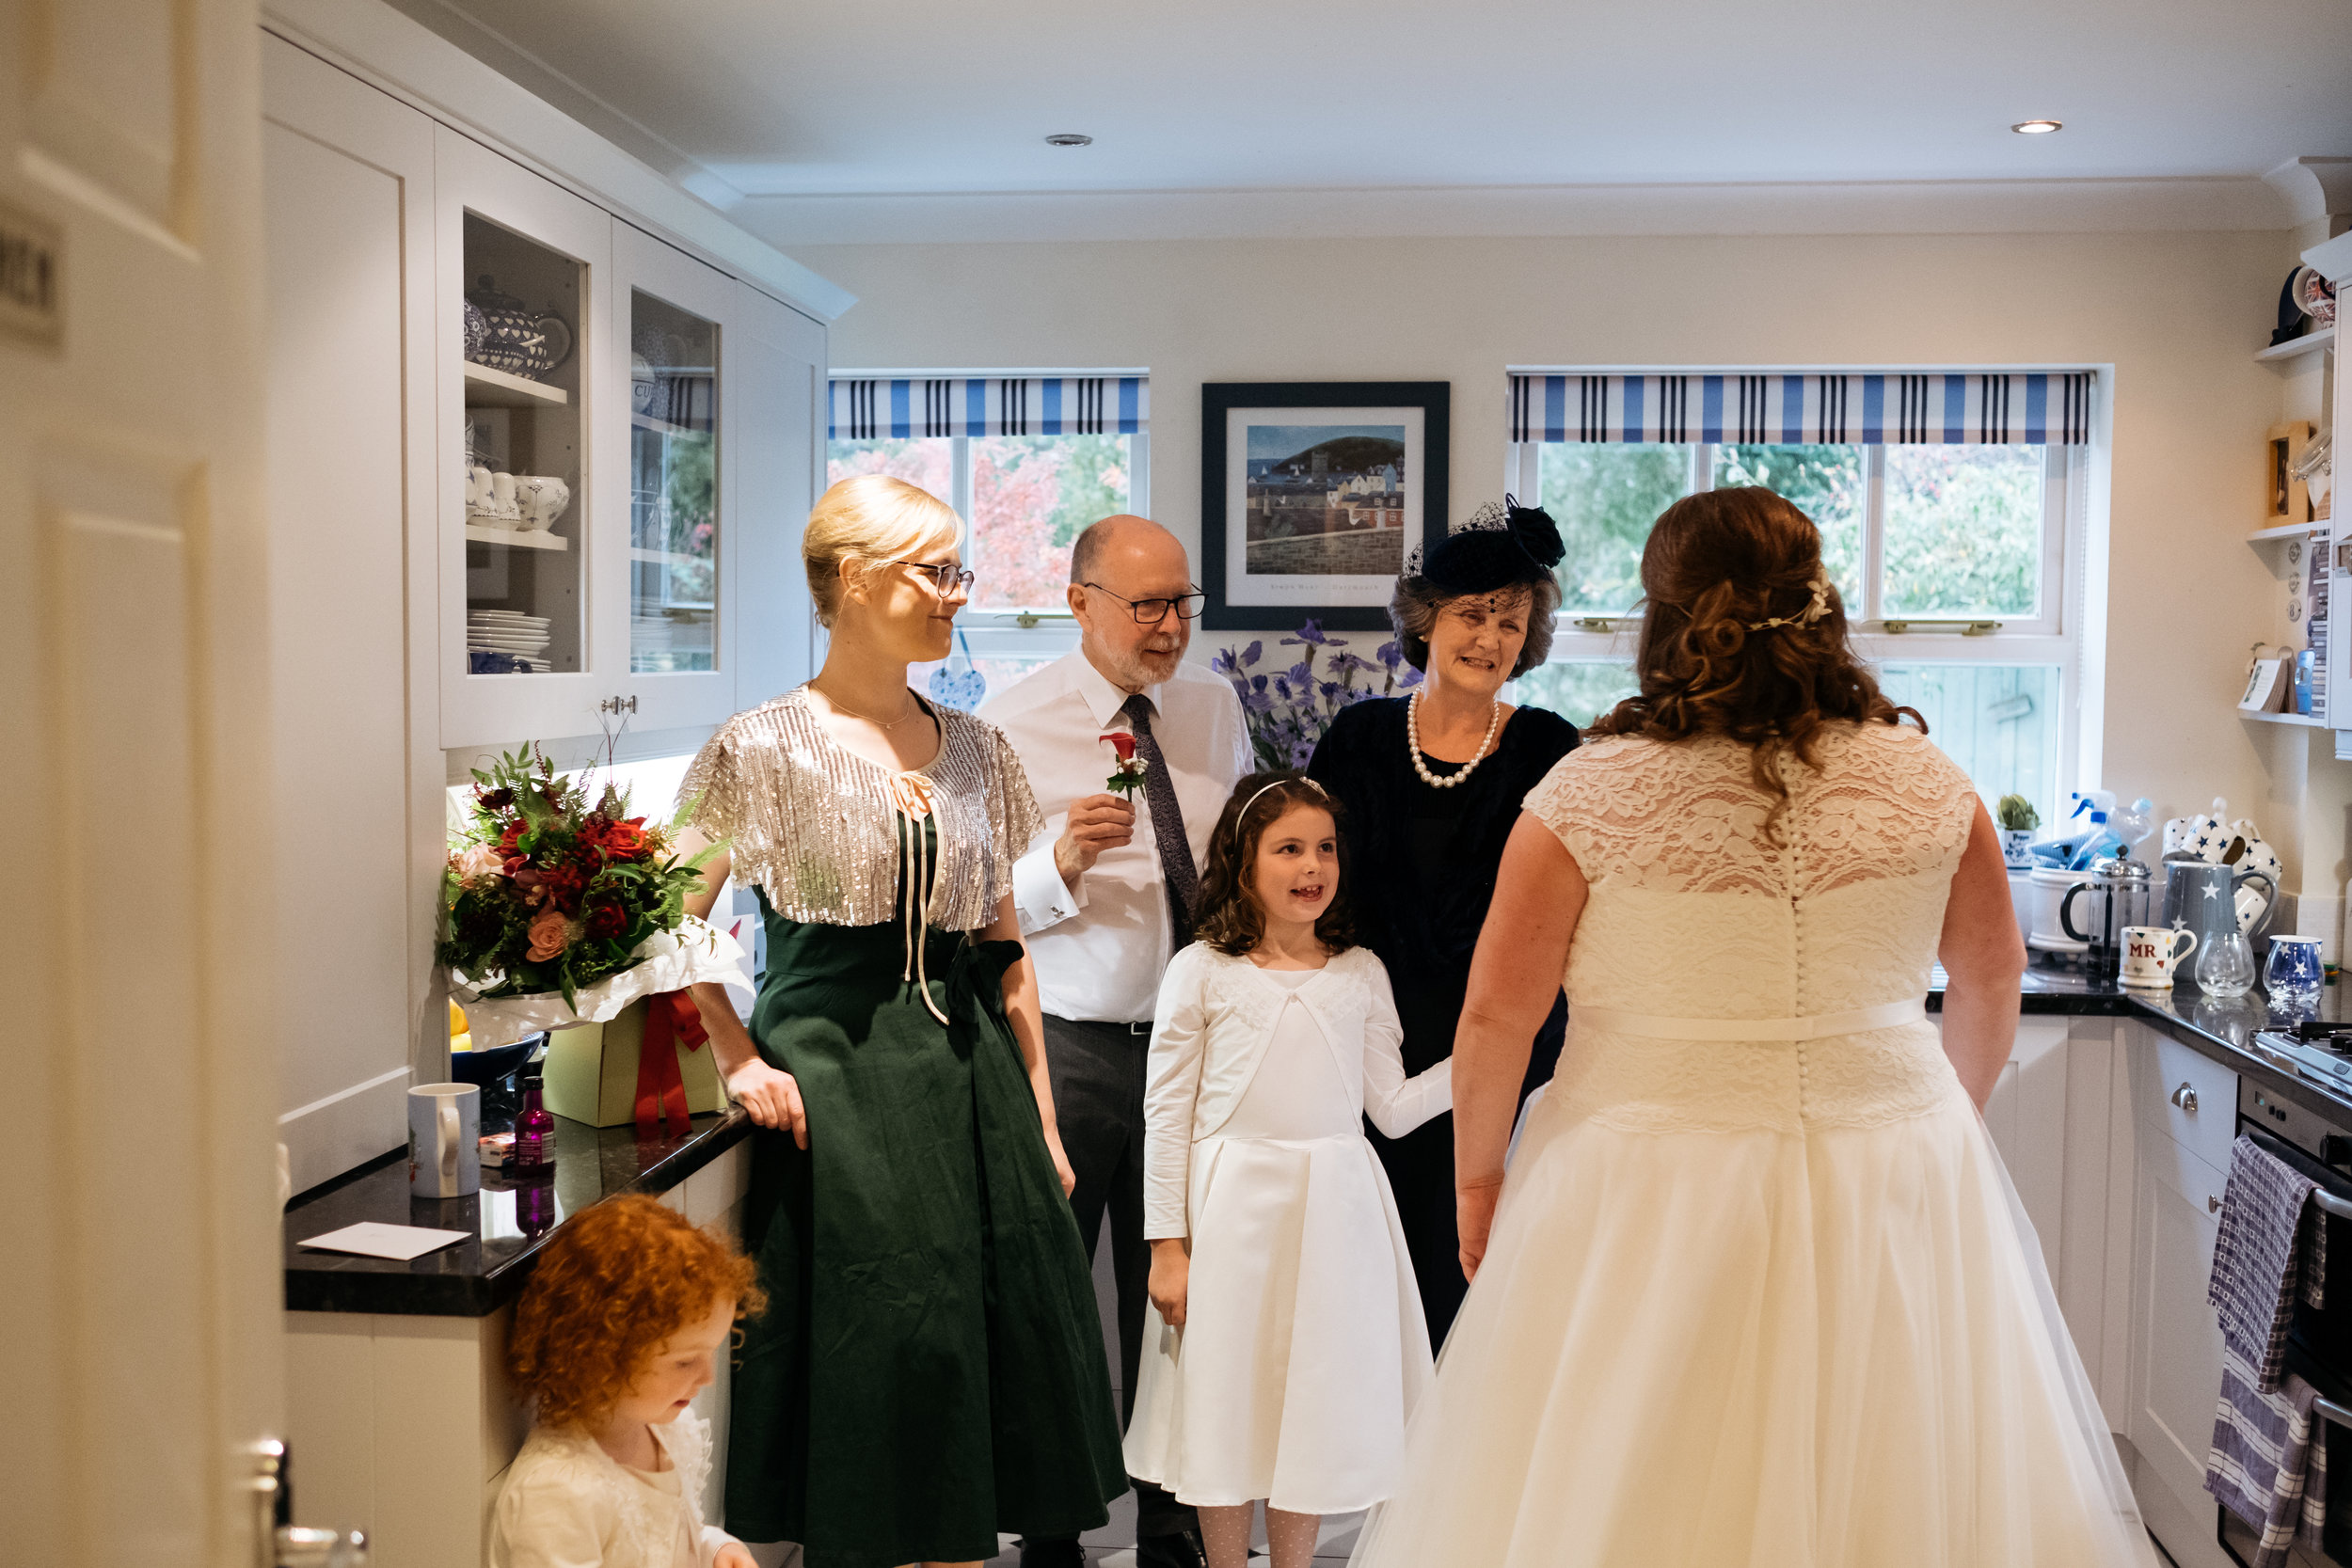 Family react to bride in wedding dress